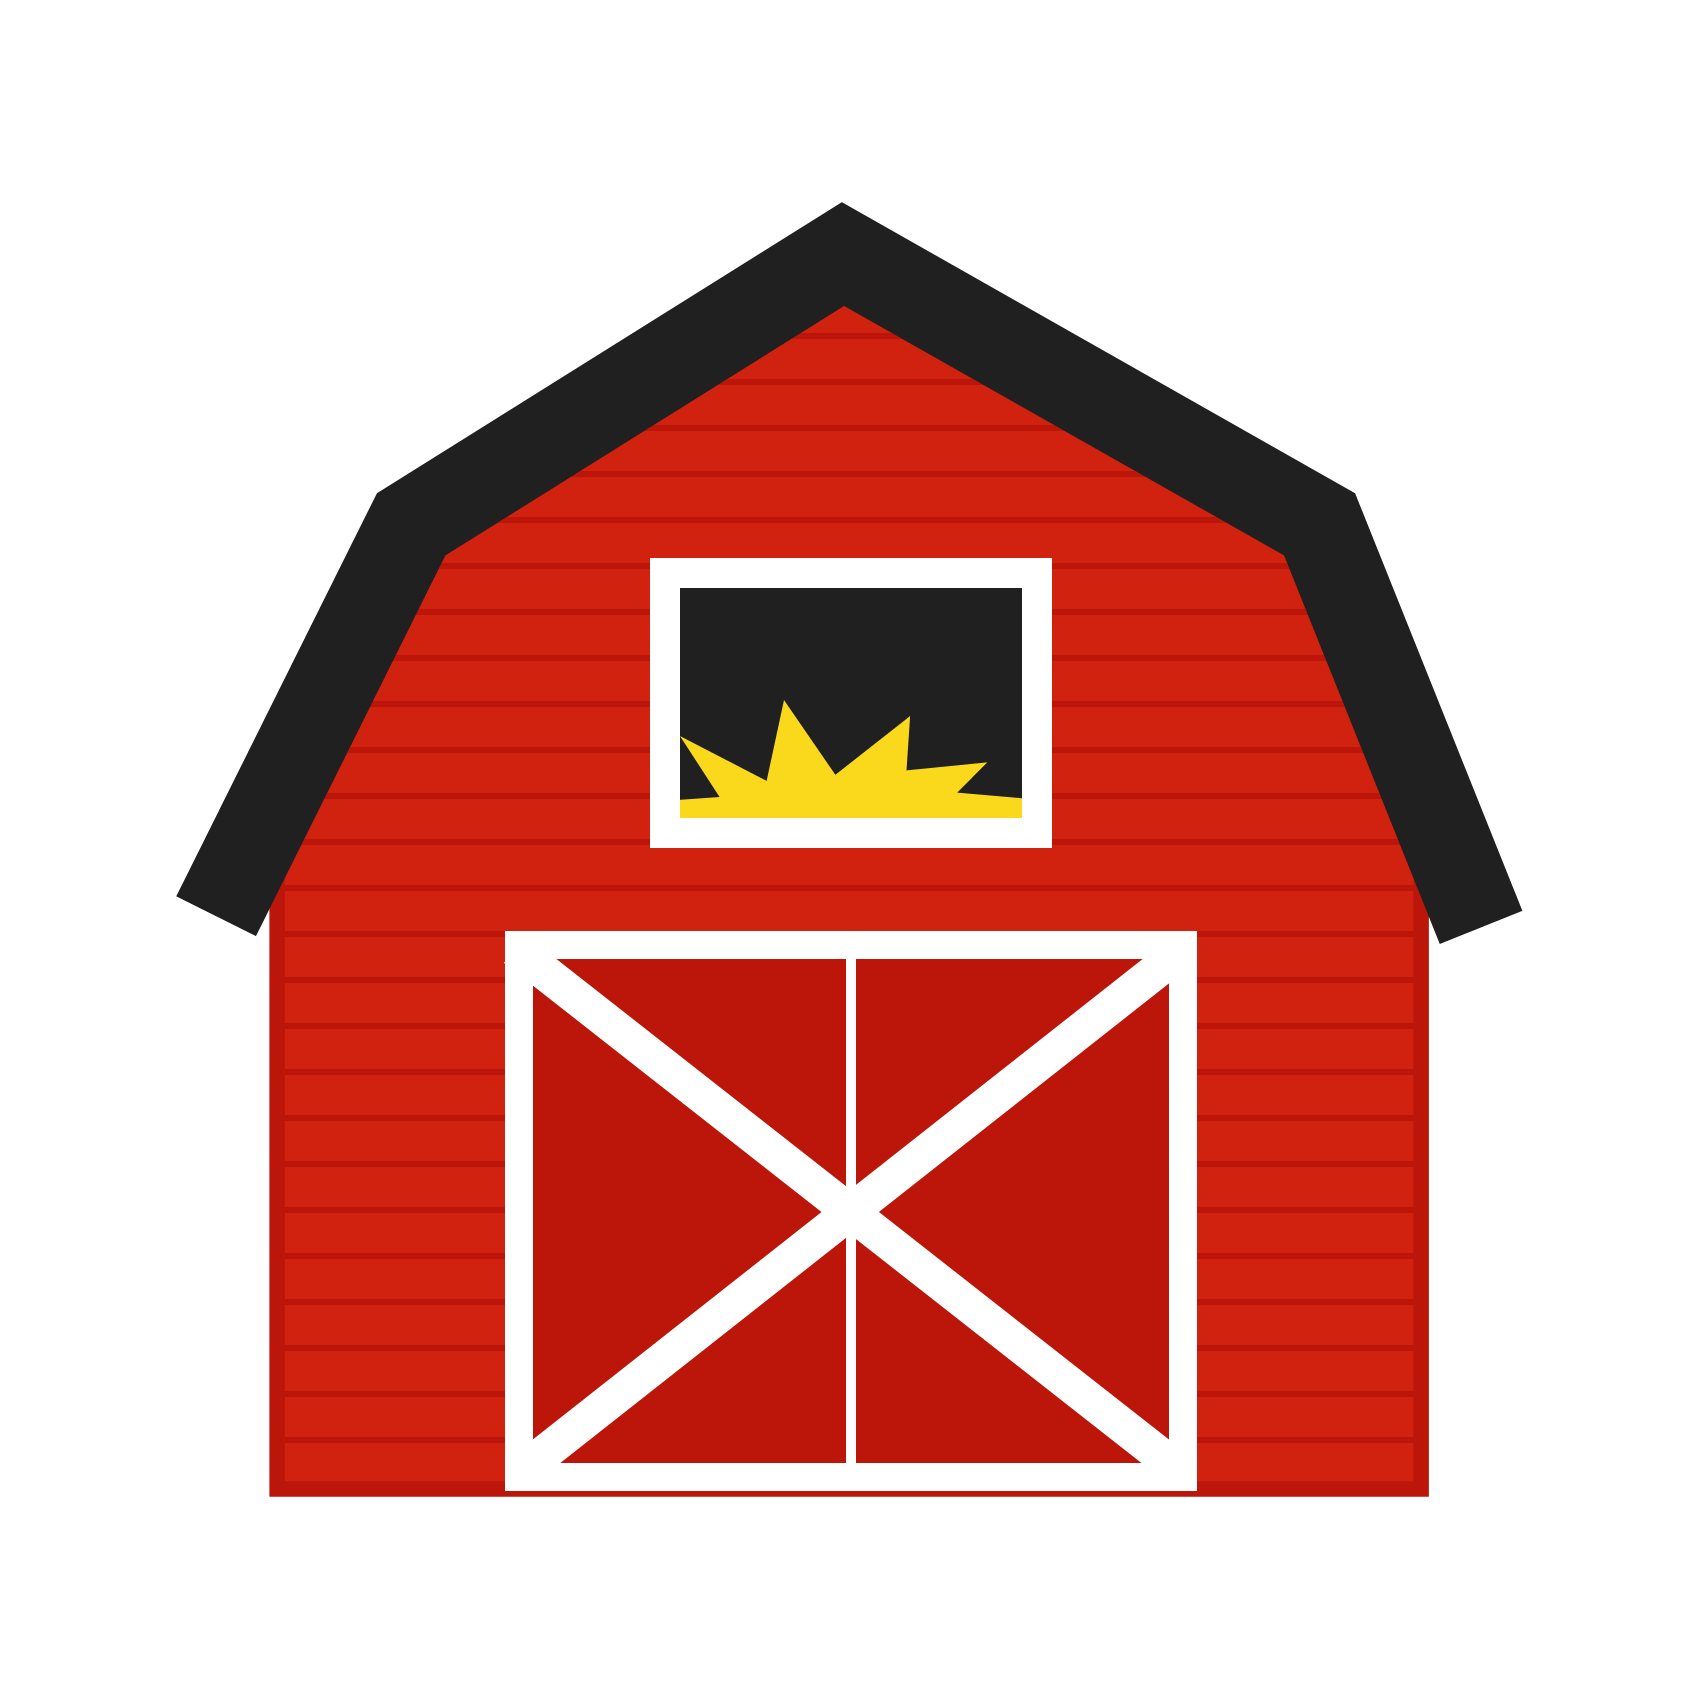 Barn clipart open door. Cliparts for free